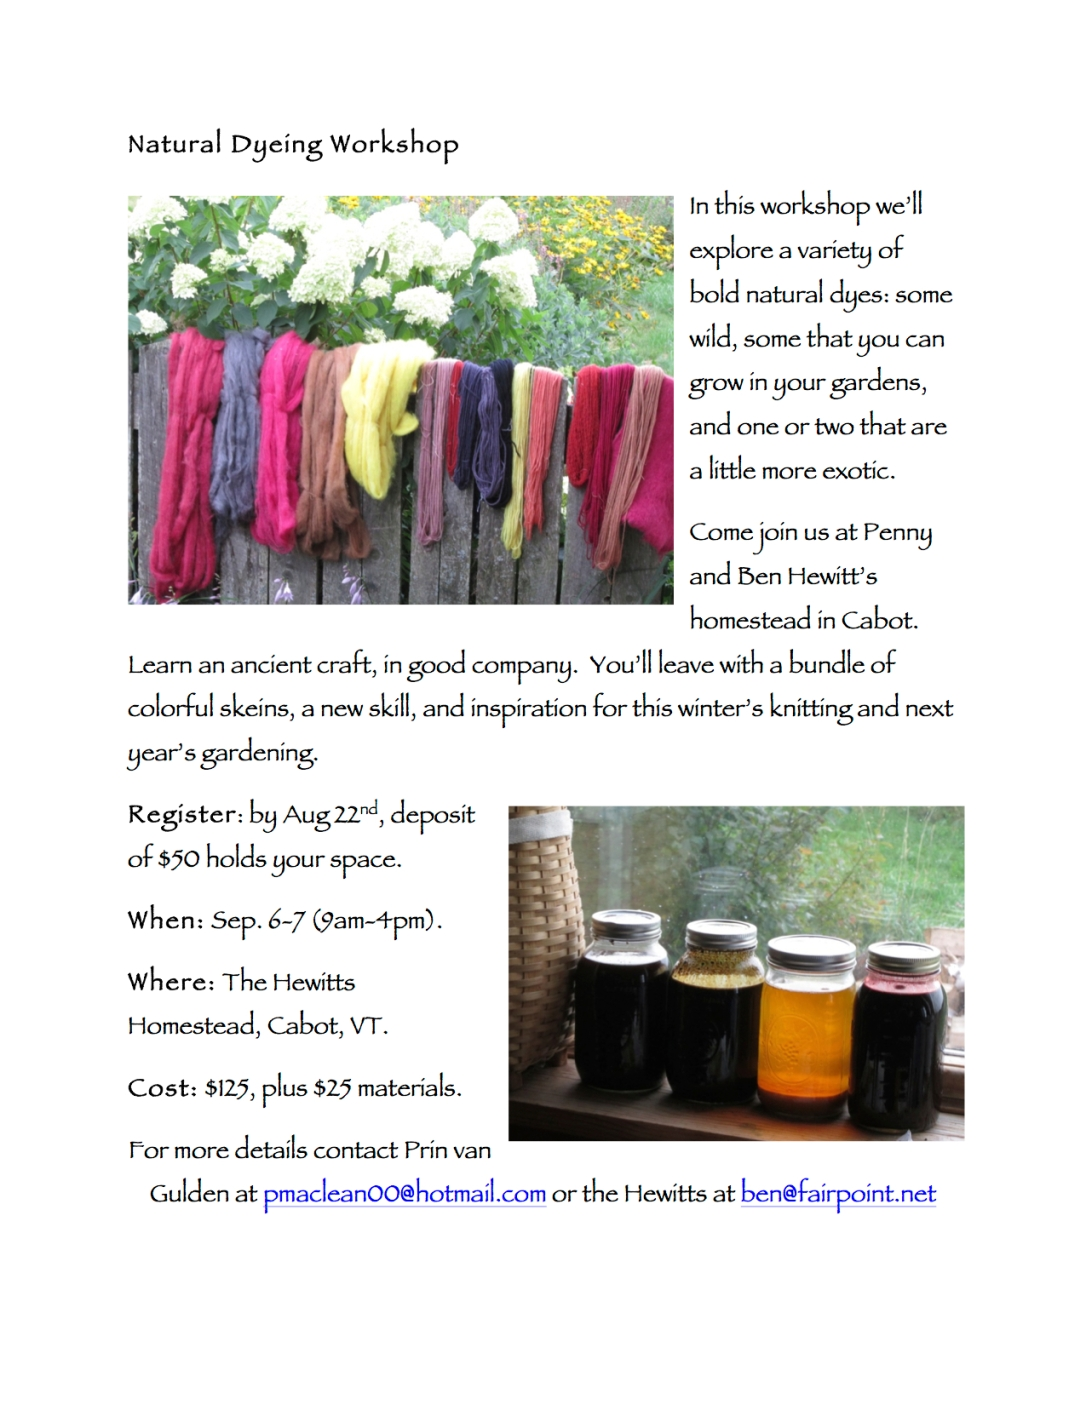 Natural Dyeing Workshop Flyer